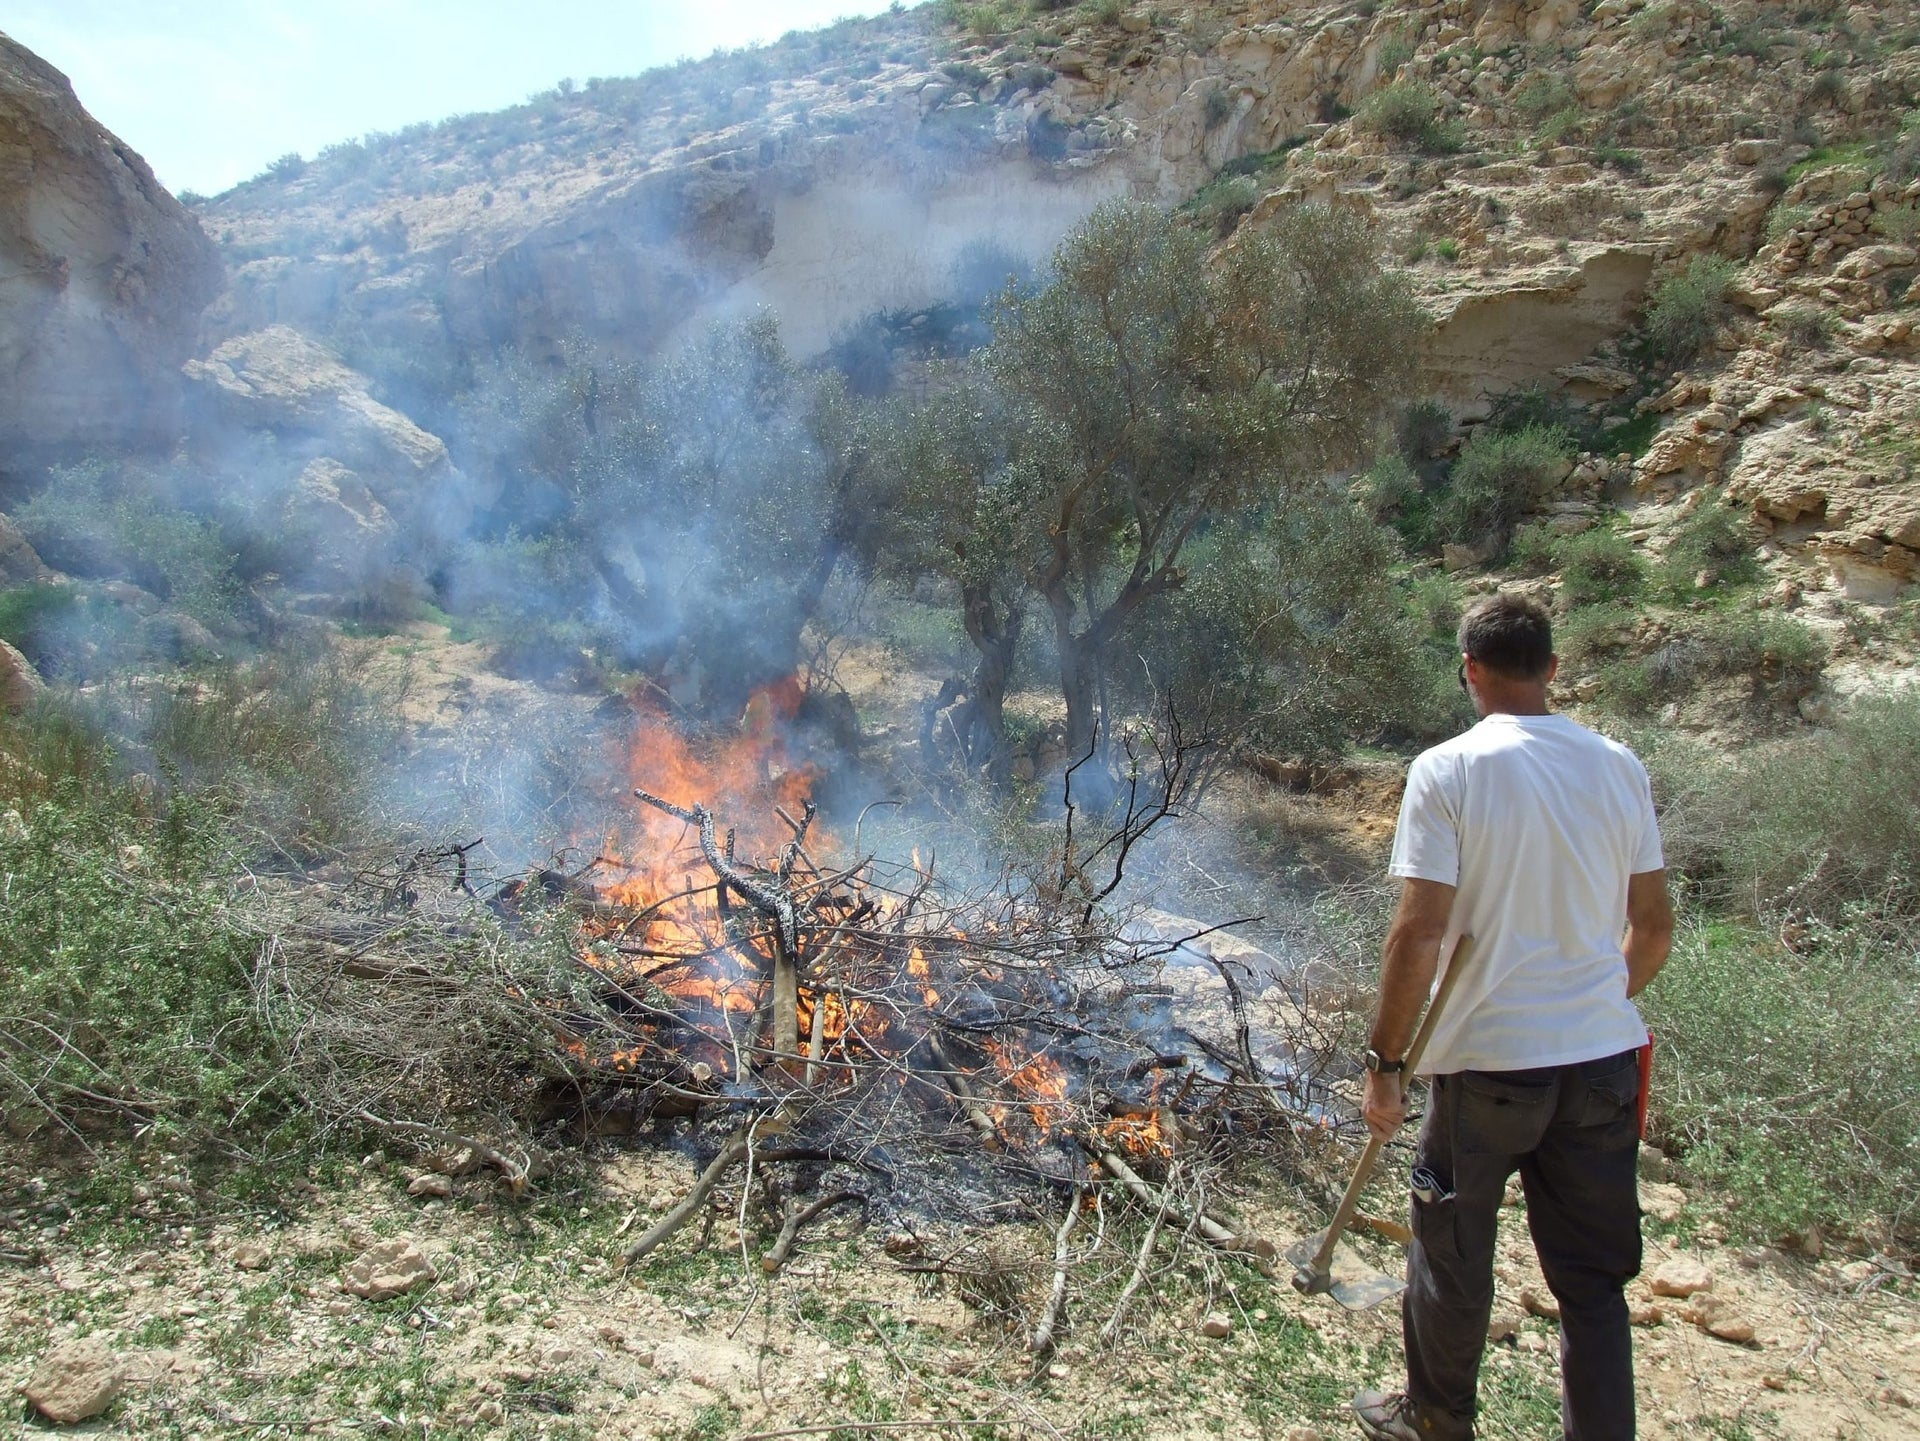 Burning detritus after cropping the Shivta olive trees